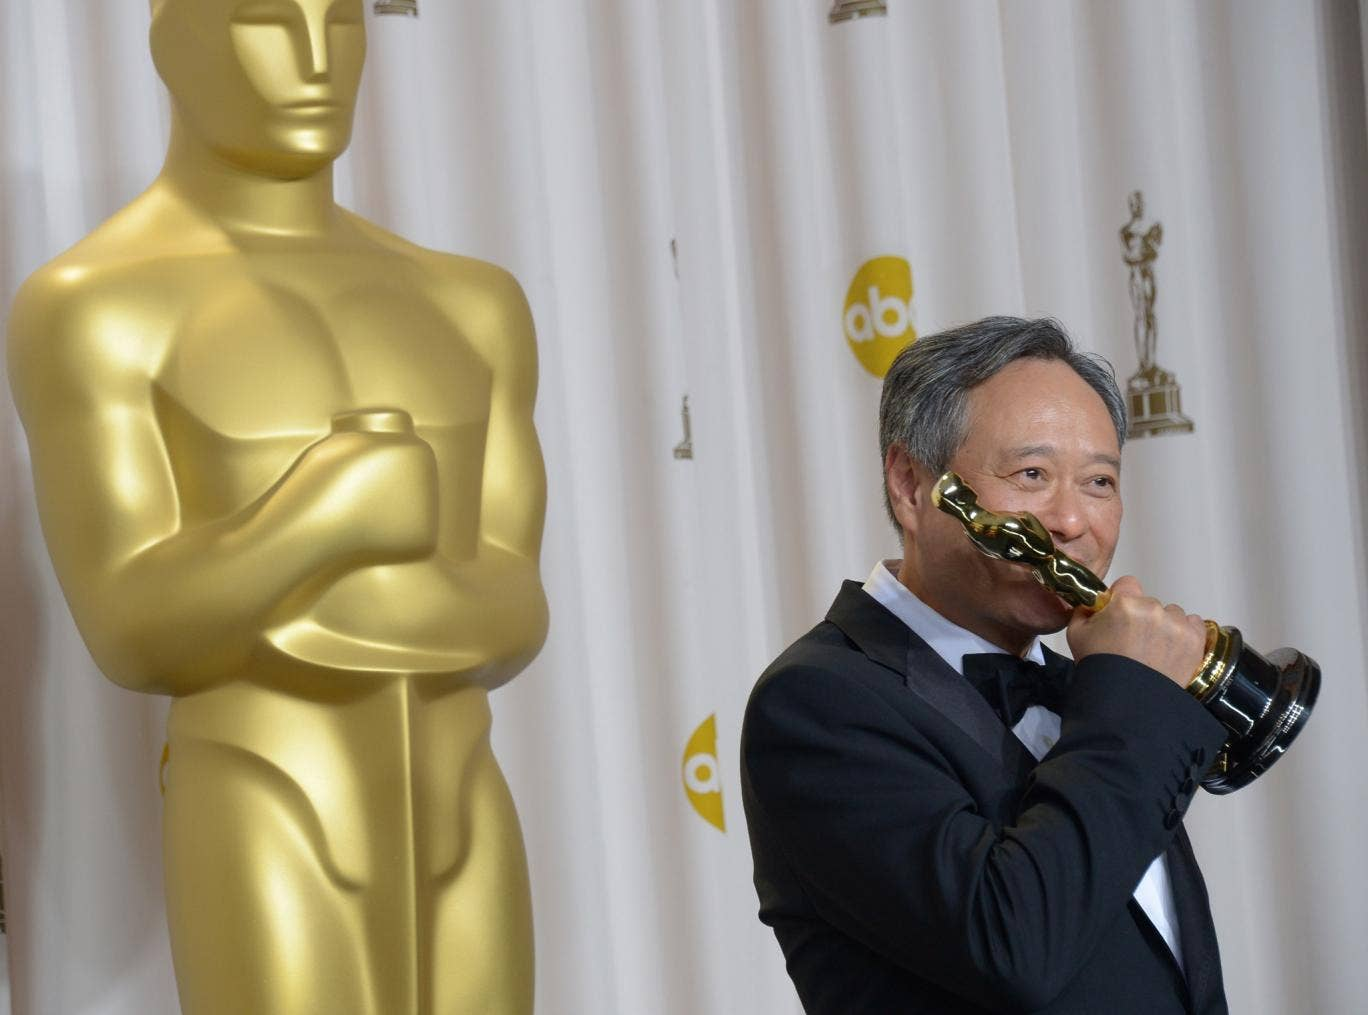 Ang Lee with his award for best director and the Oscars 2013